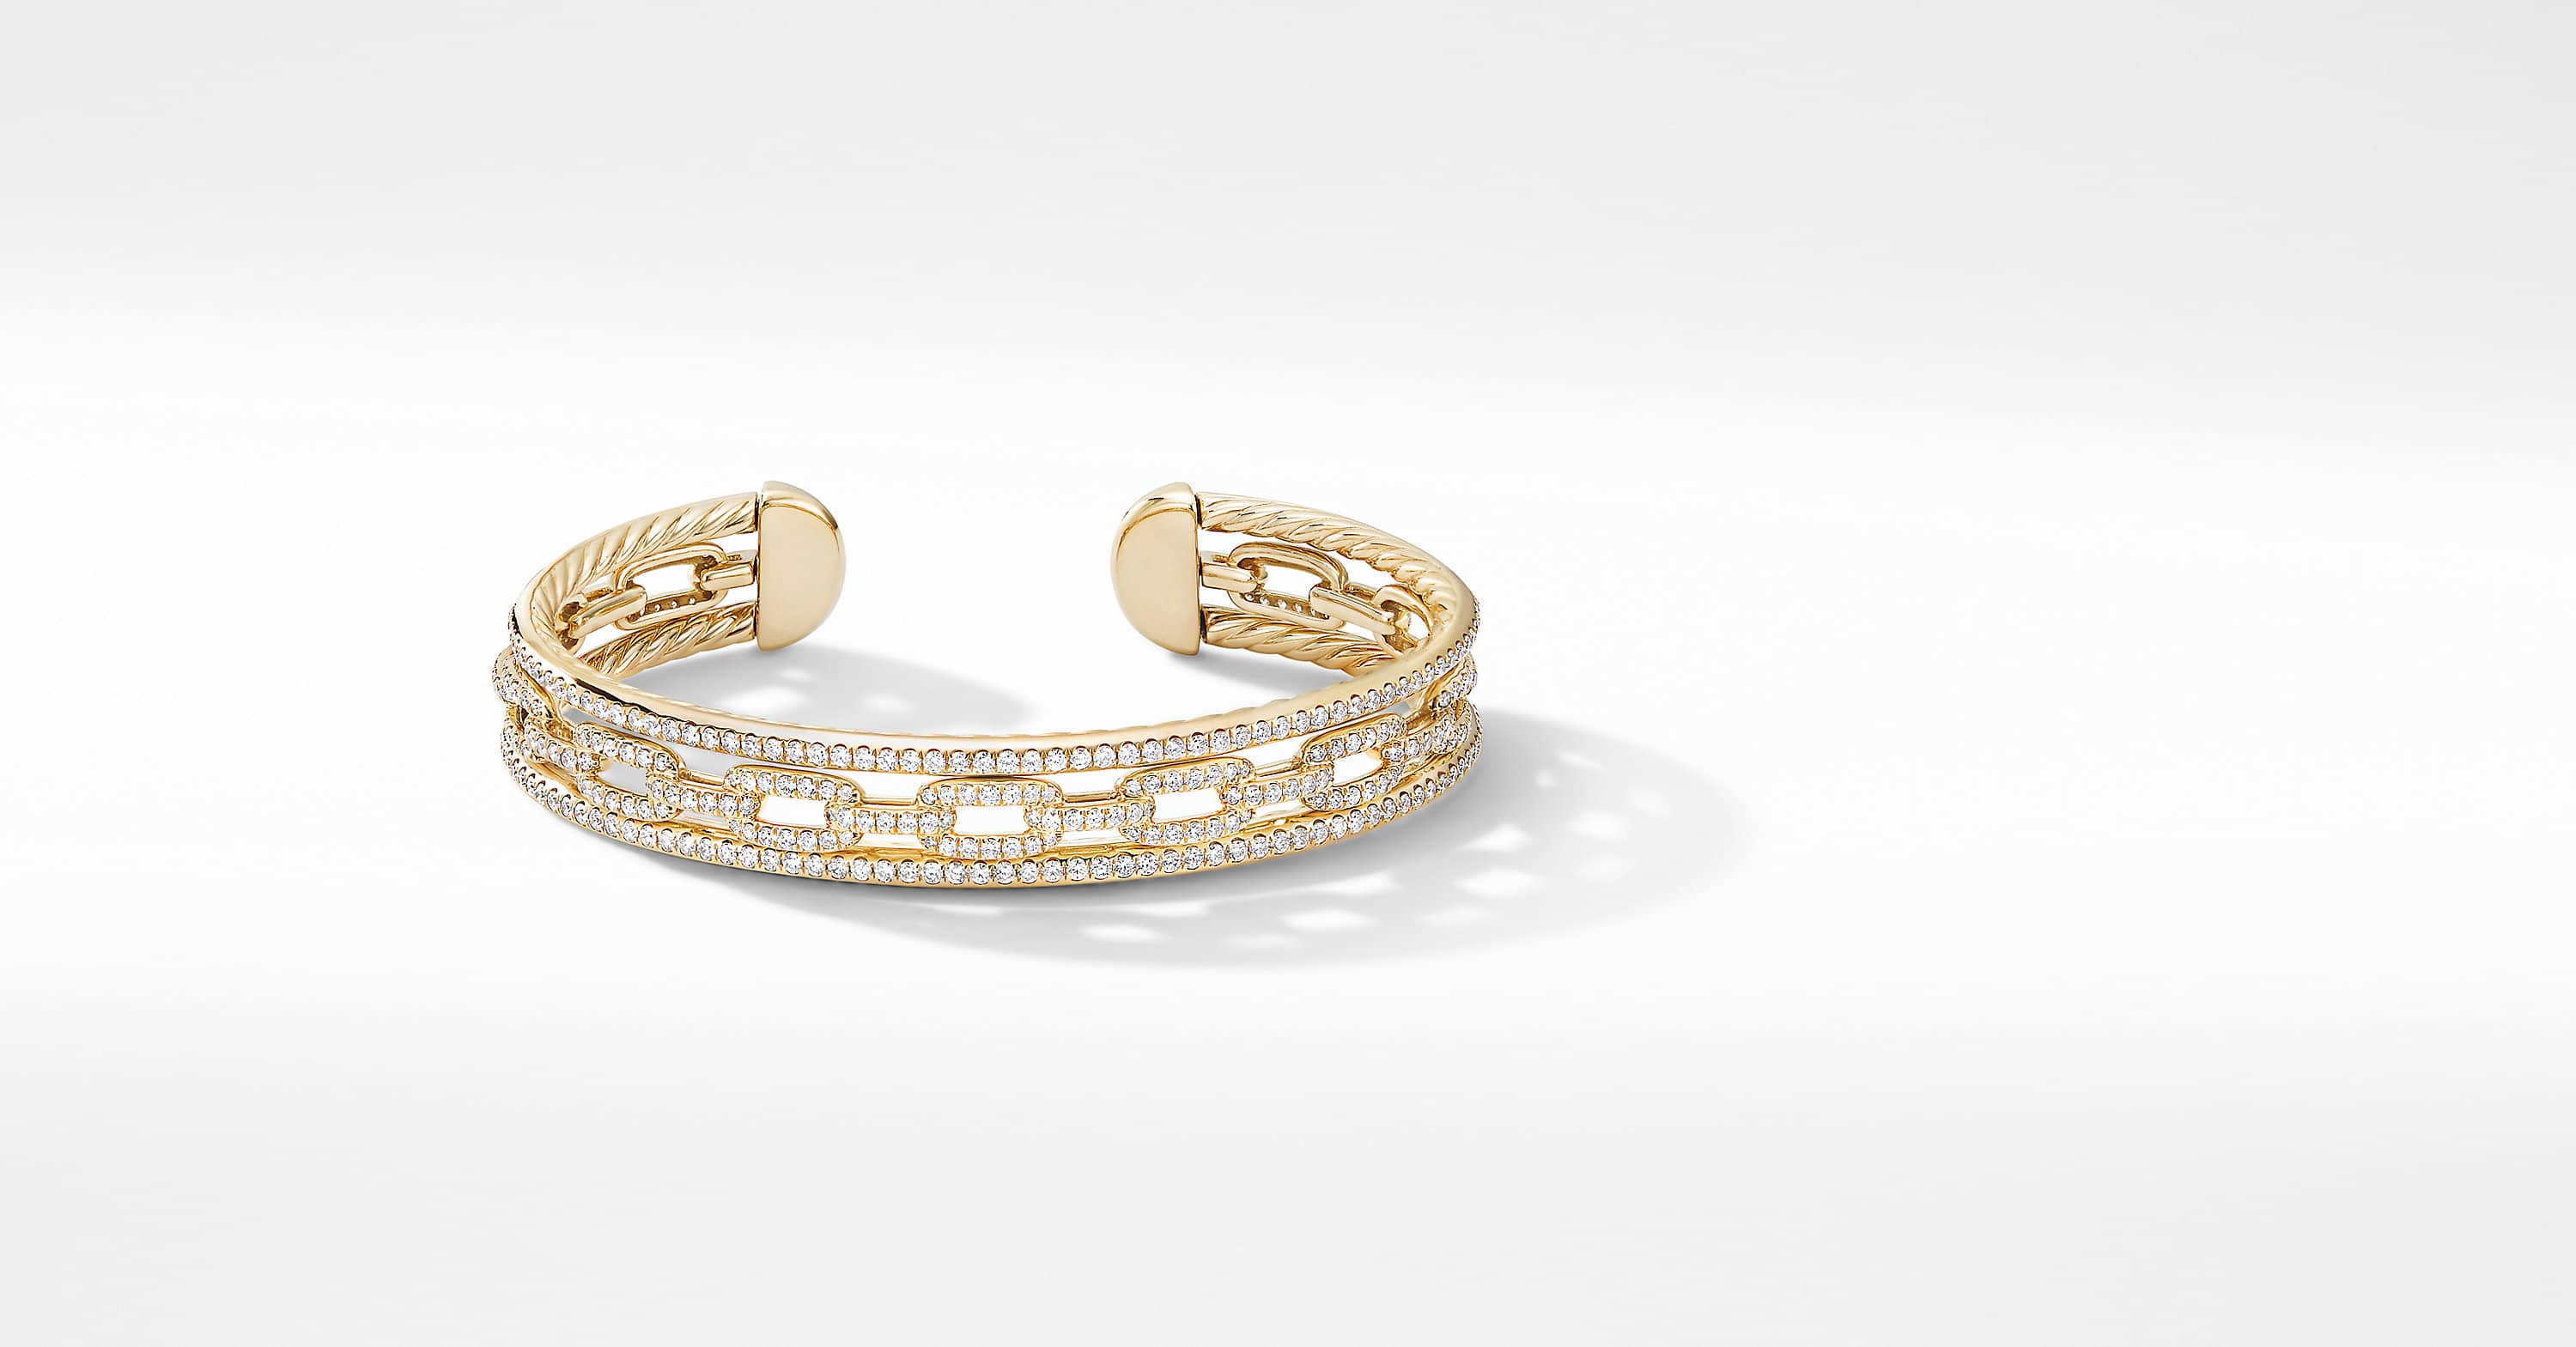 Stax Three-Row Chain Link Bracelet in 18K Yellow Gold with Diamonds